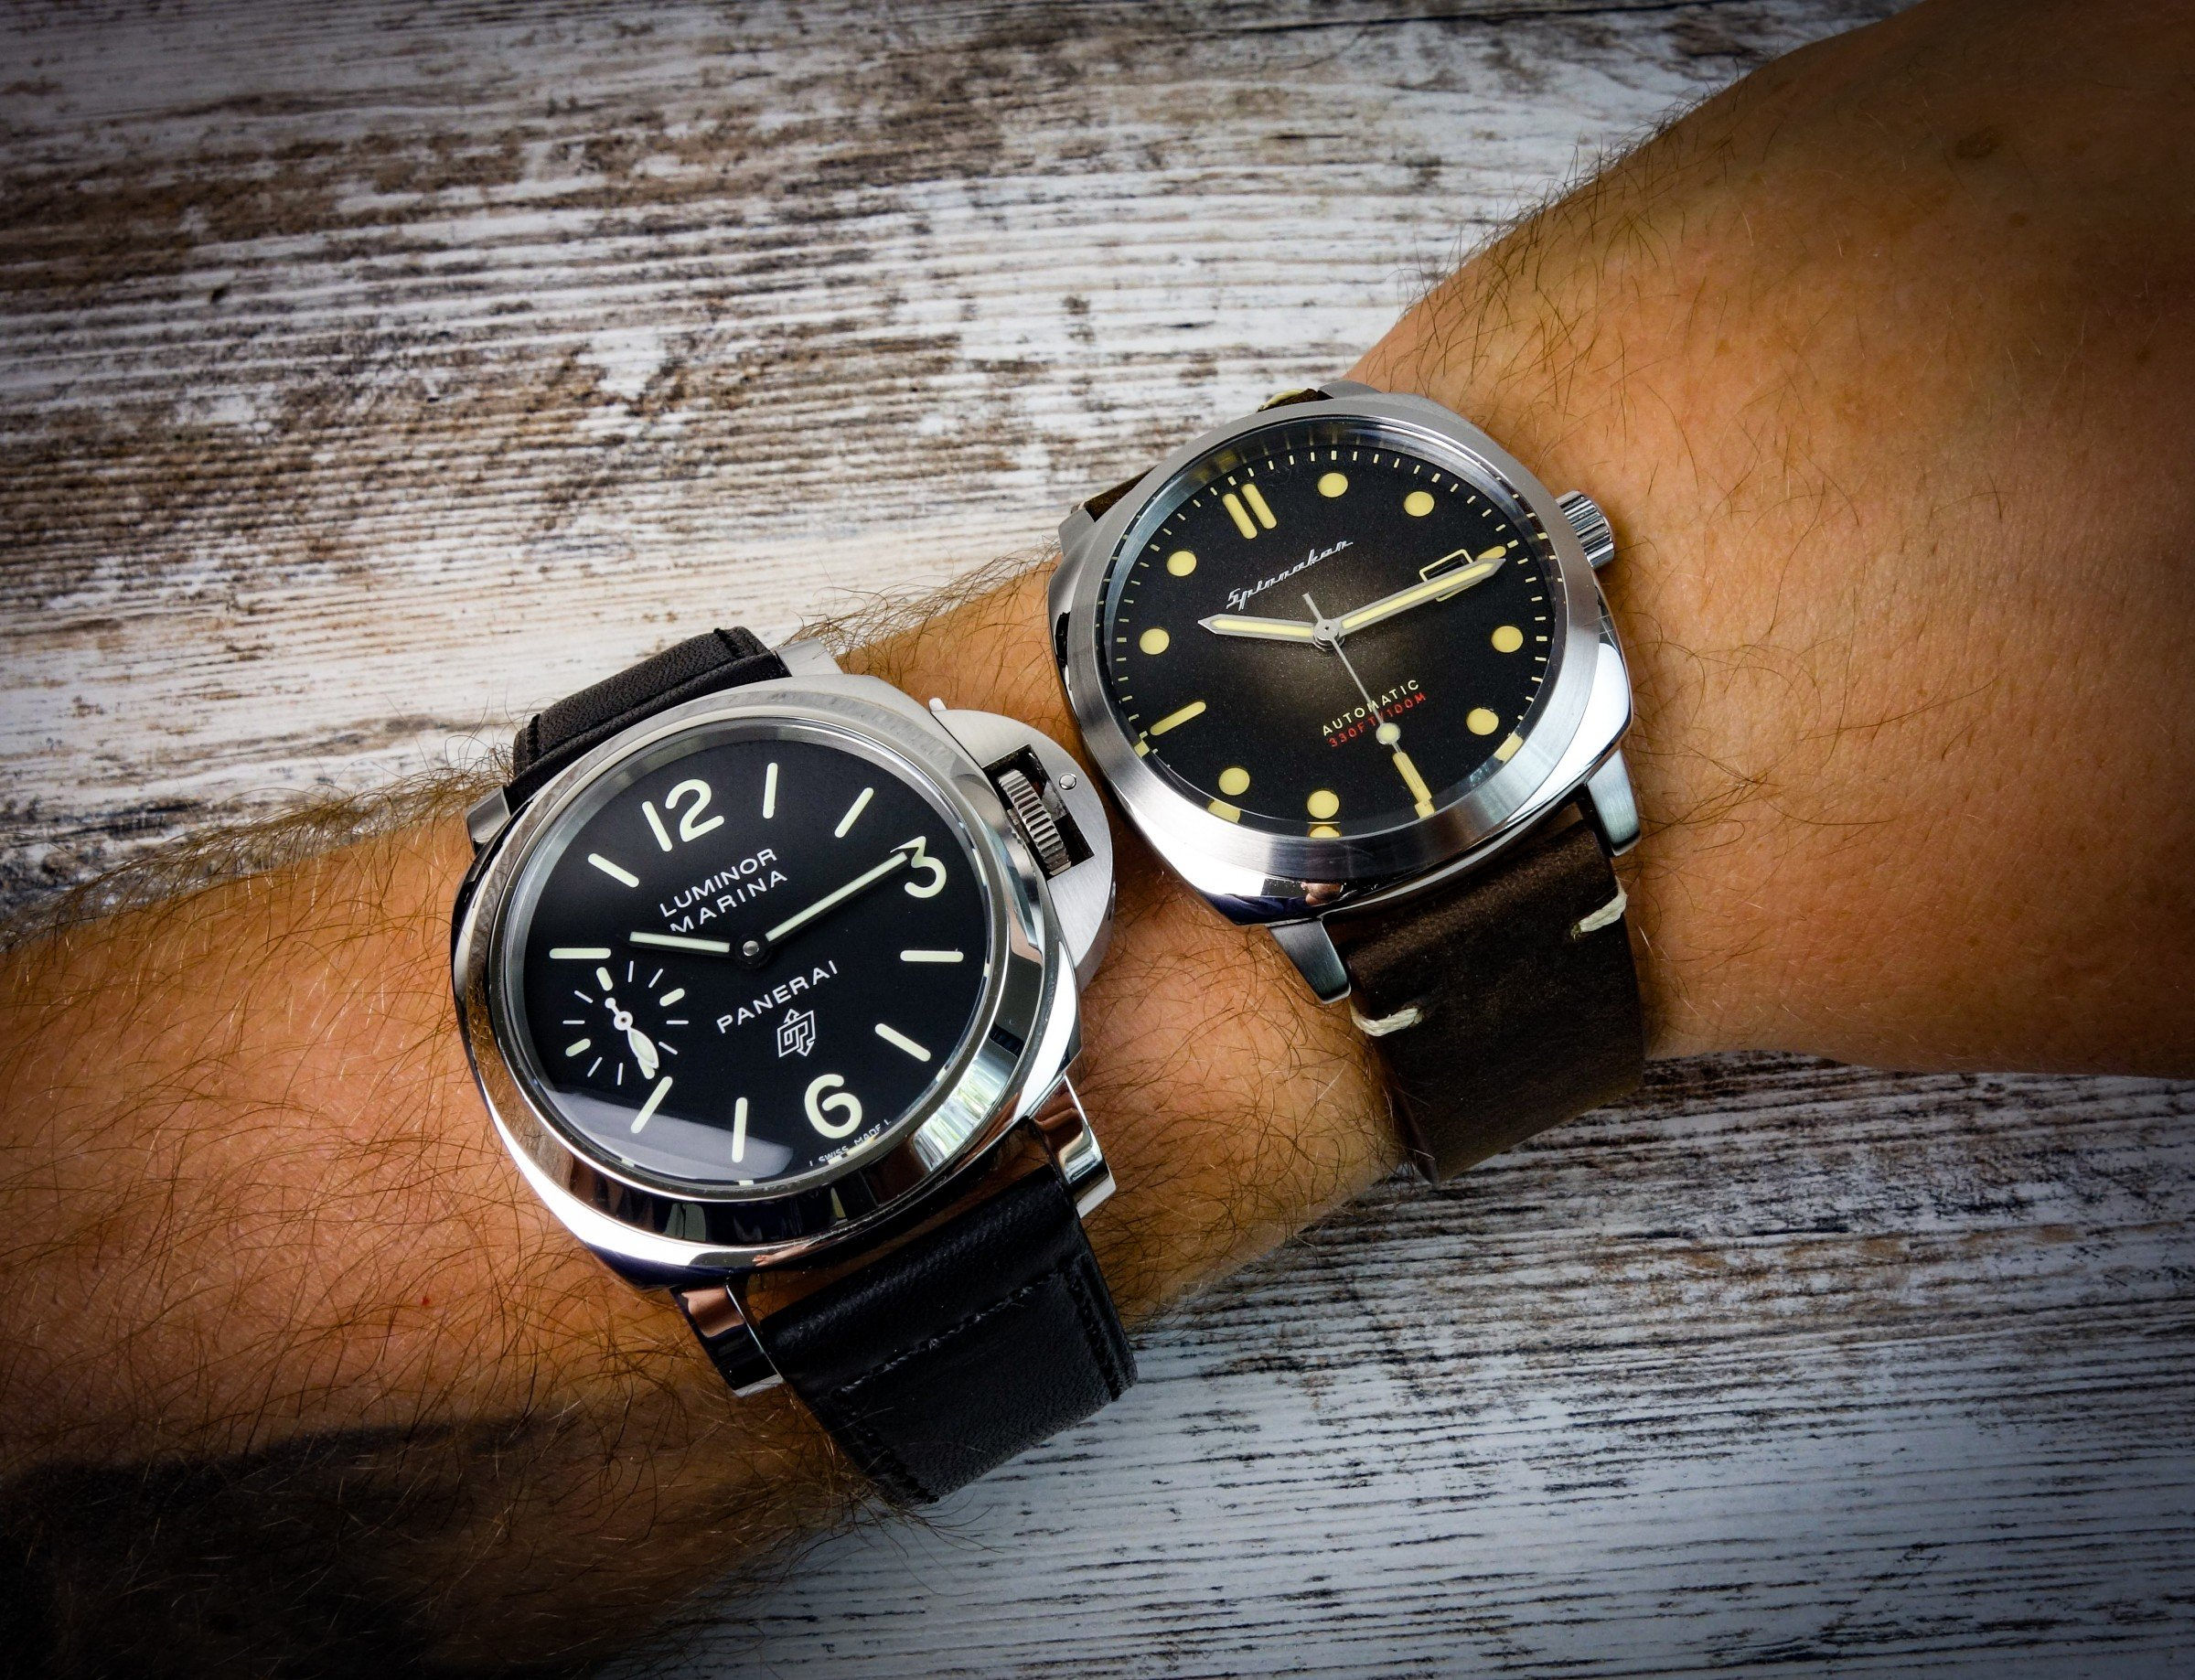 Panerai Hommage vs. Original-2